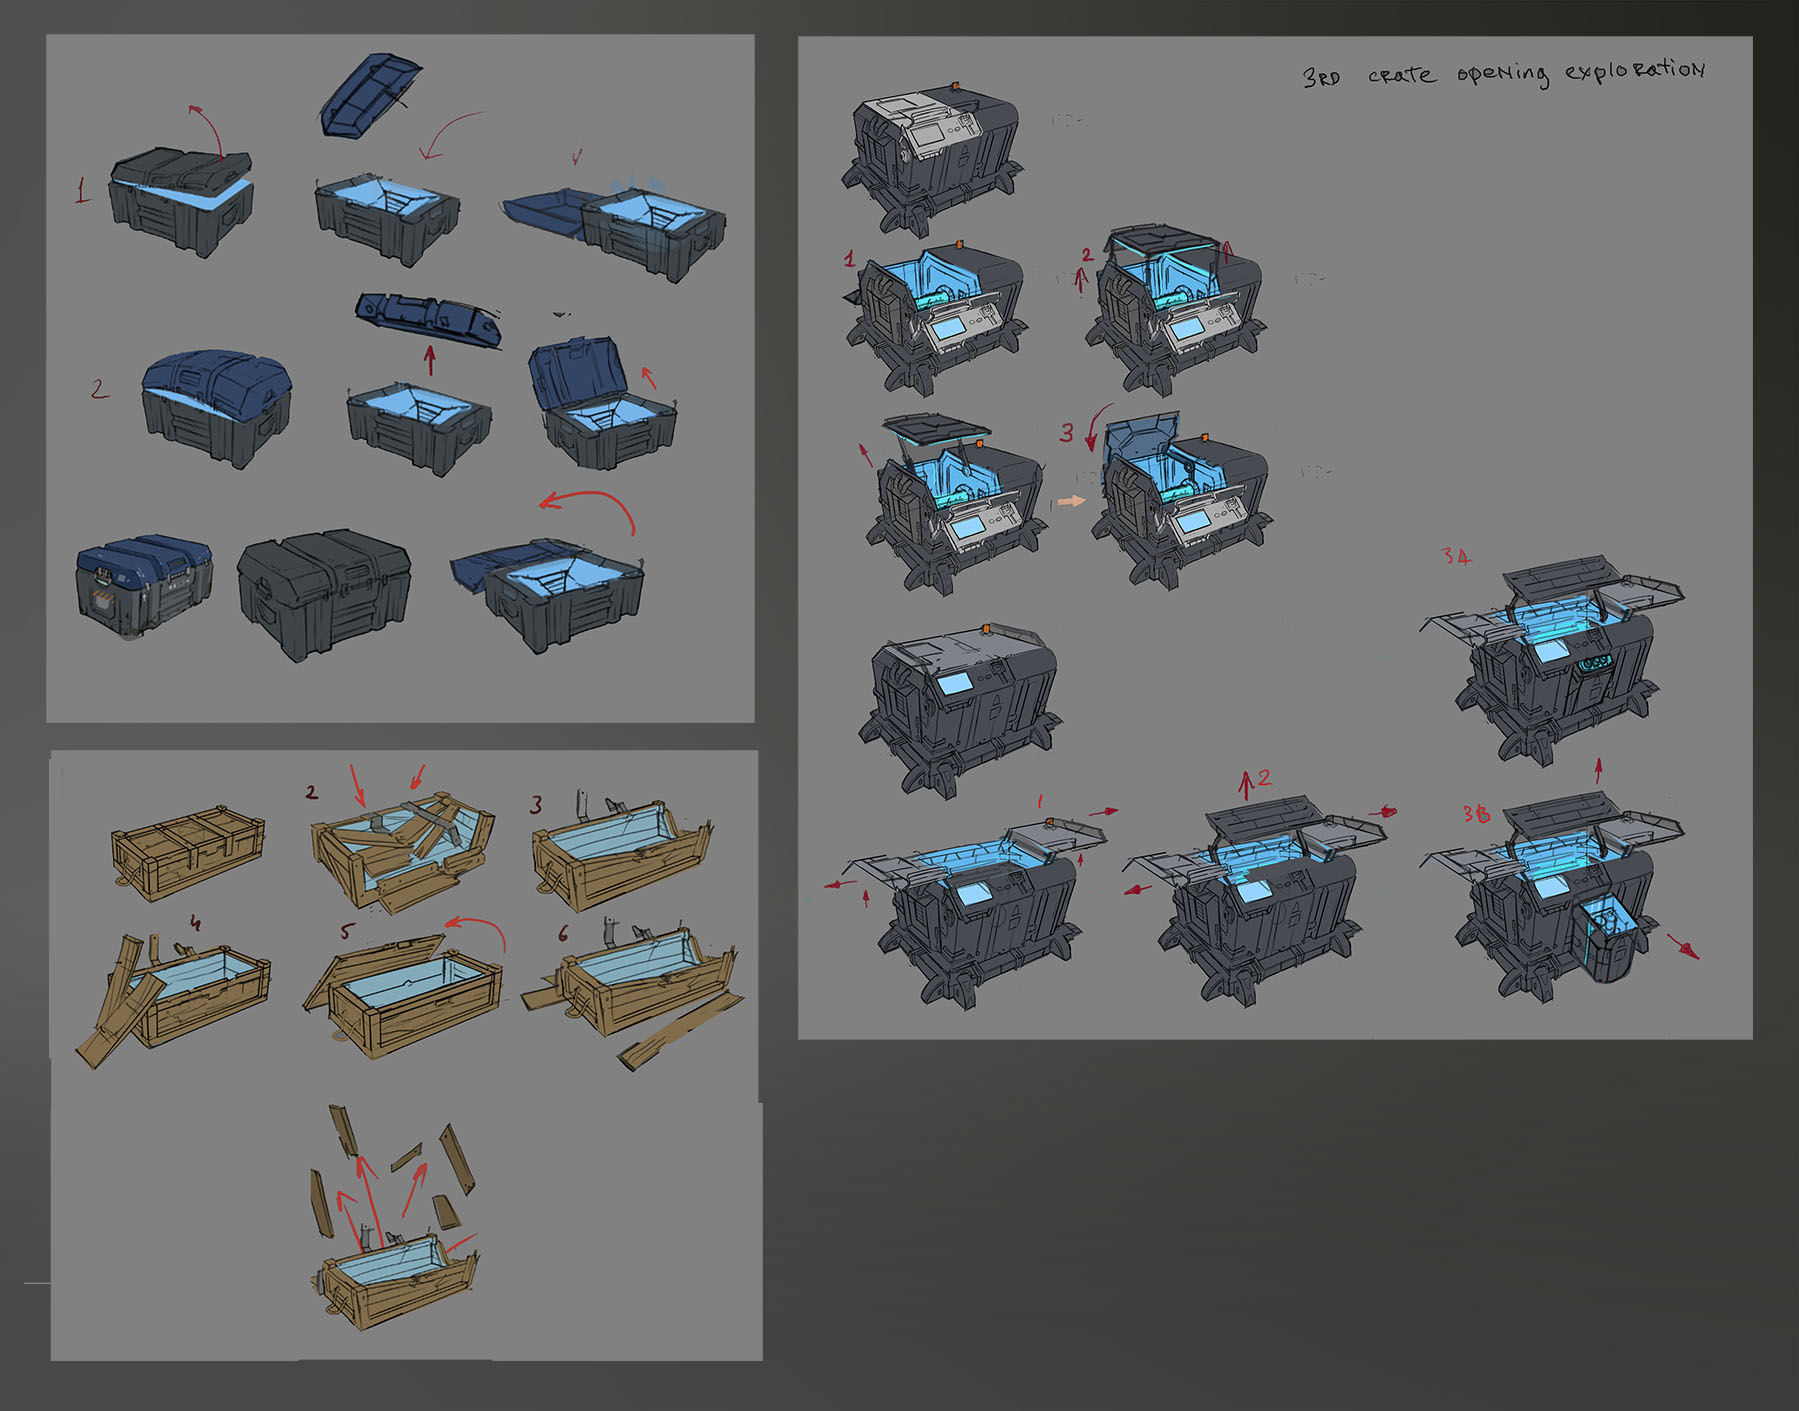 Drone_Crates_sketches1.jpg